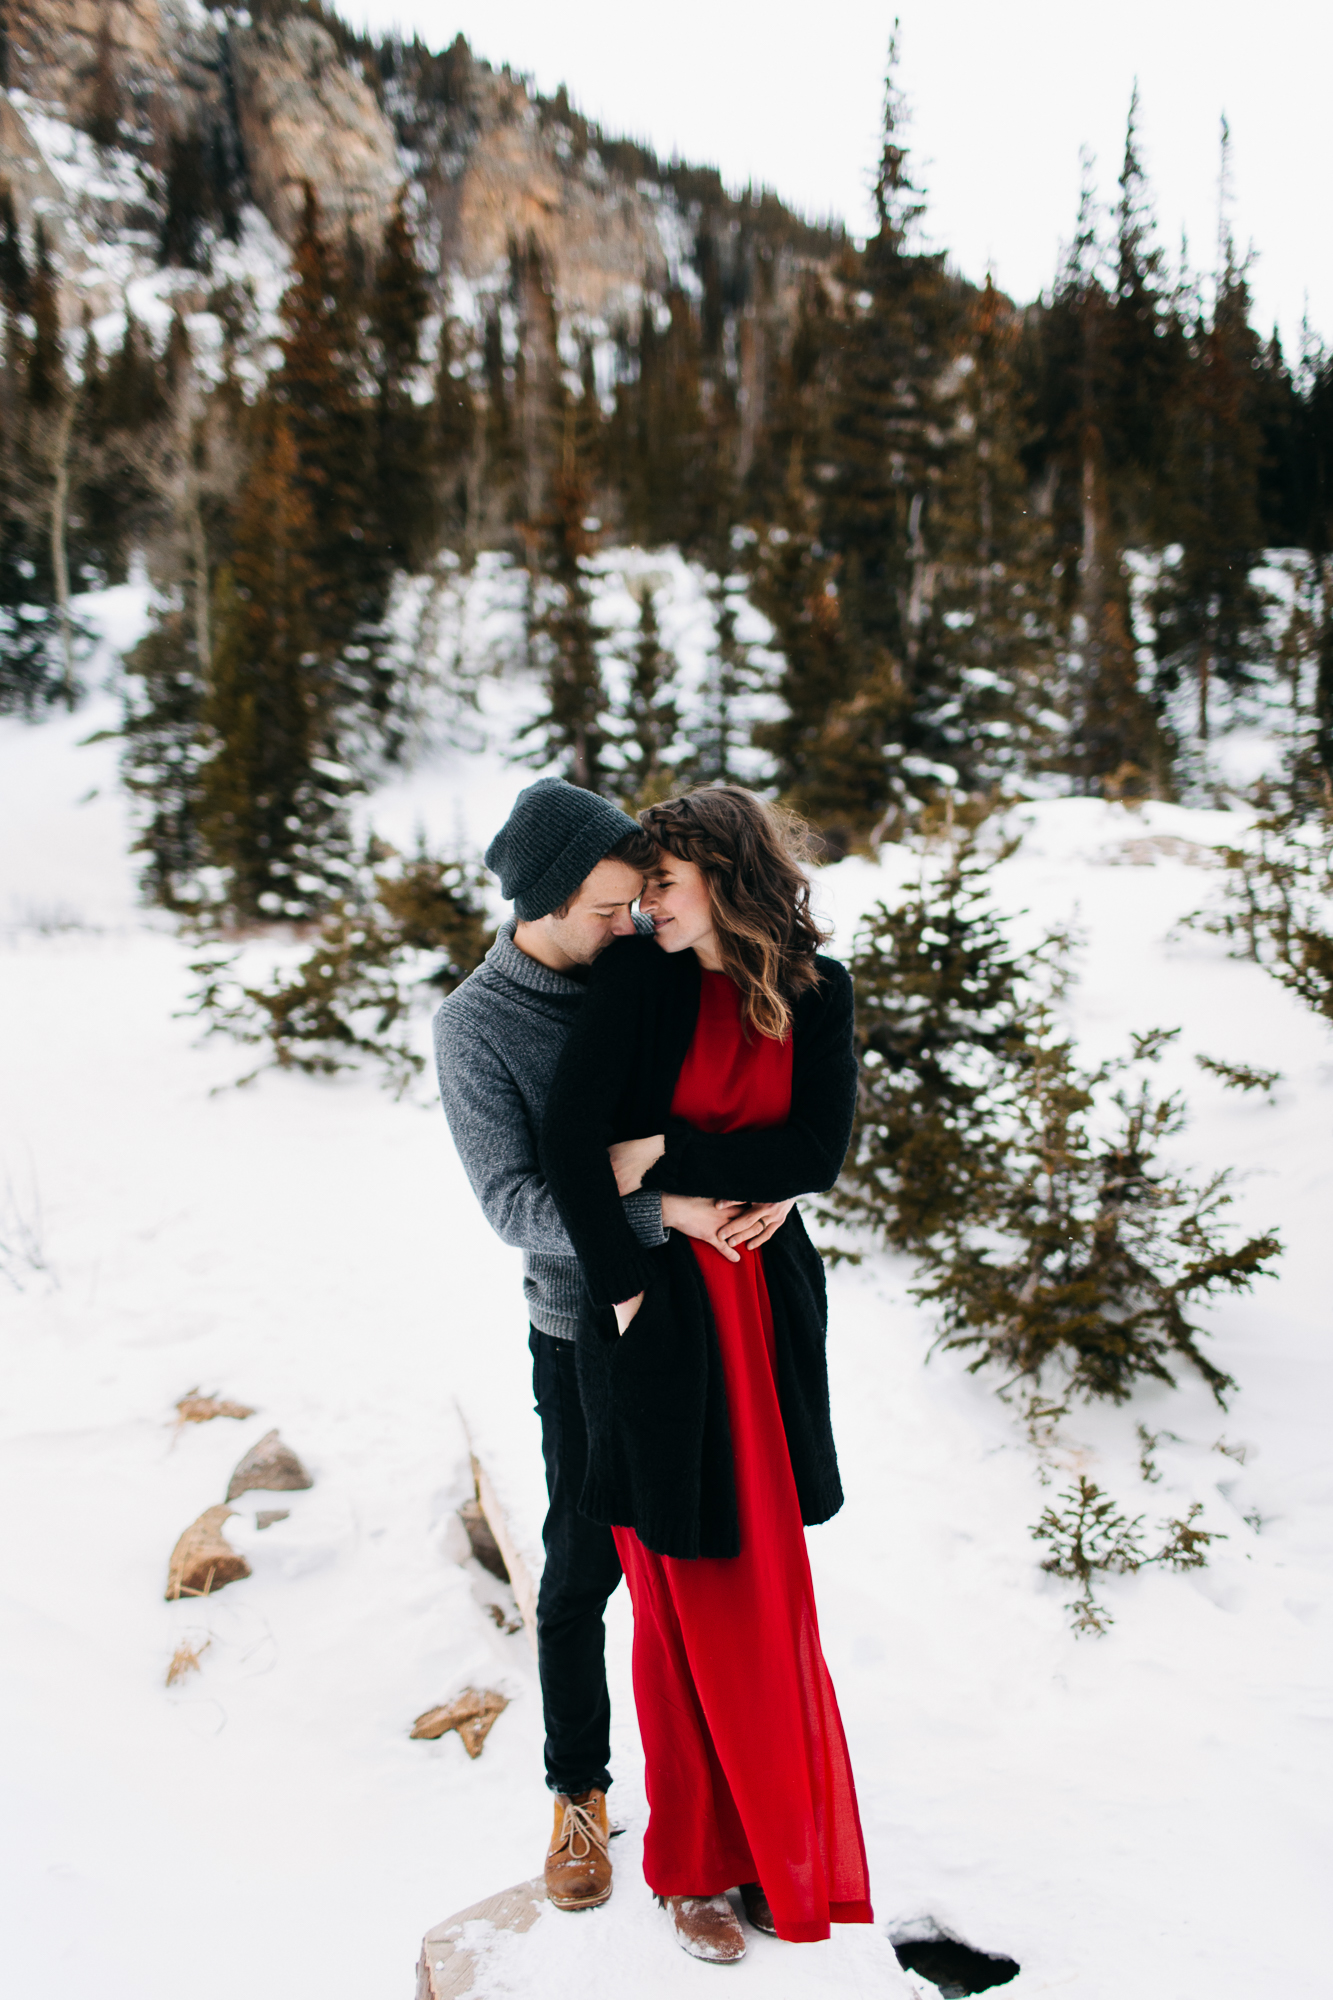 LEXIE + JAKE | WINTER ADVENTURE SESSION AT DREAM LAKE IN ROCKY MOUNTAIN NATIONAL PARK